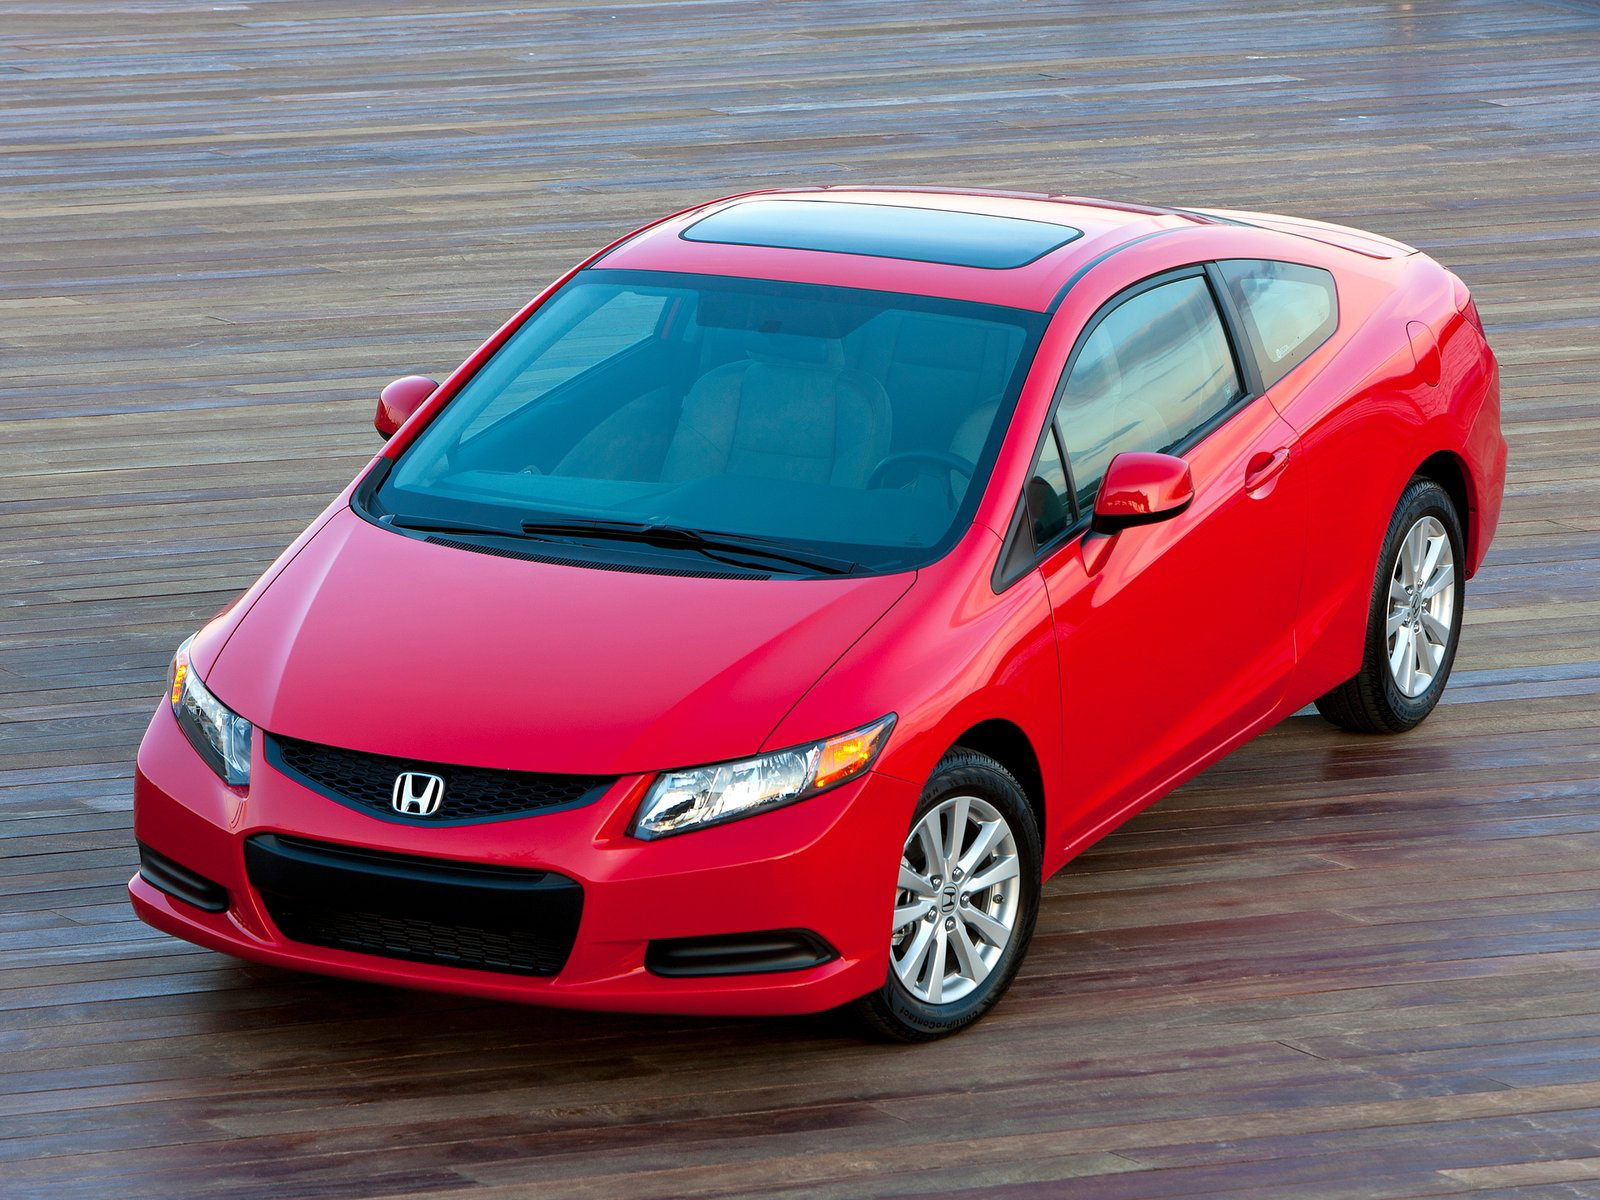 http://4.bp.blogspot.com/-RNxL_tud3Gk/TpdylOBXkoI/AAAAAAAAF9M/N2bOP-G3BQI/s1600/Honda_Civic_Coupe_2012_japanese-car-wallpapers_5.jpg